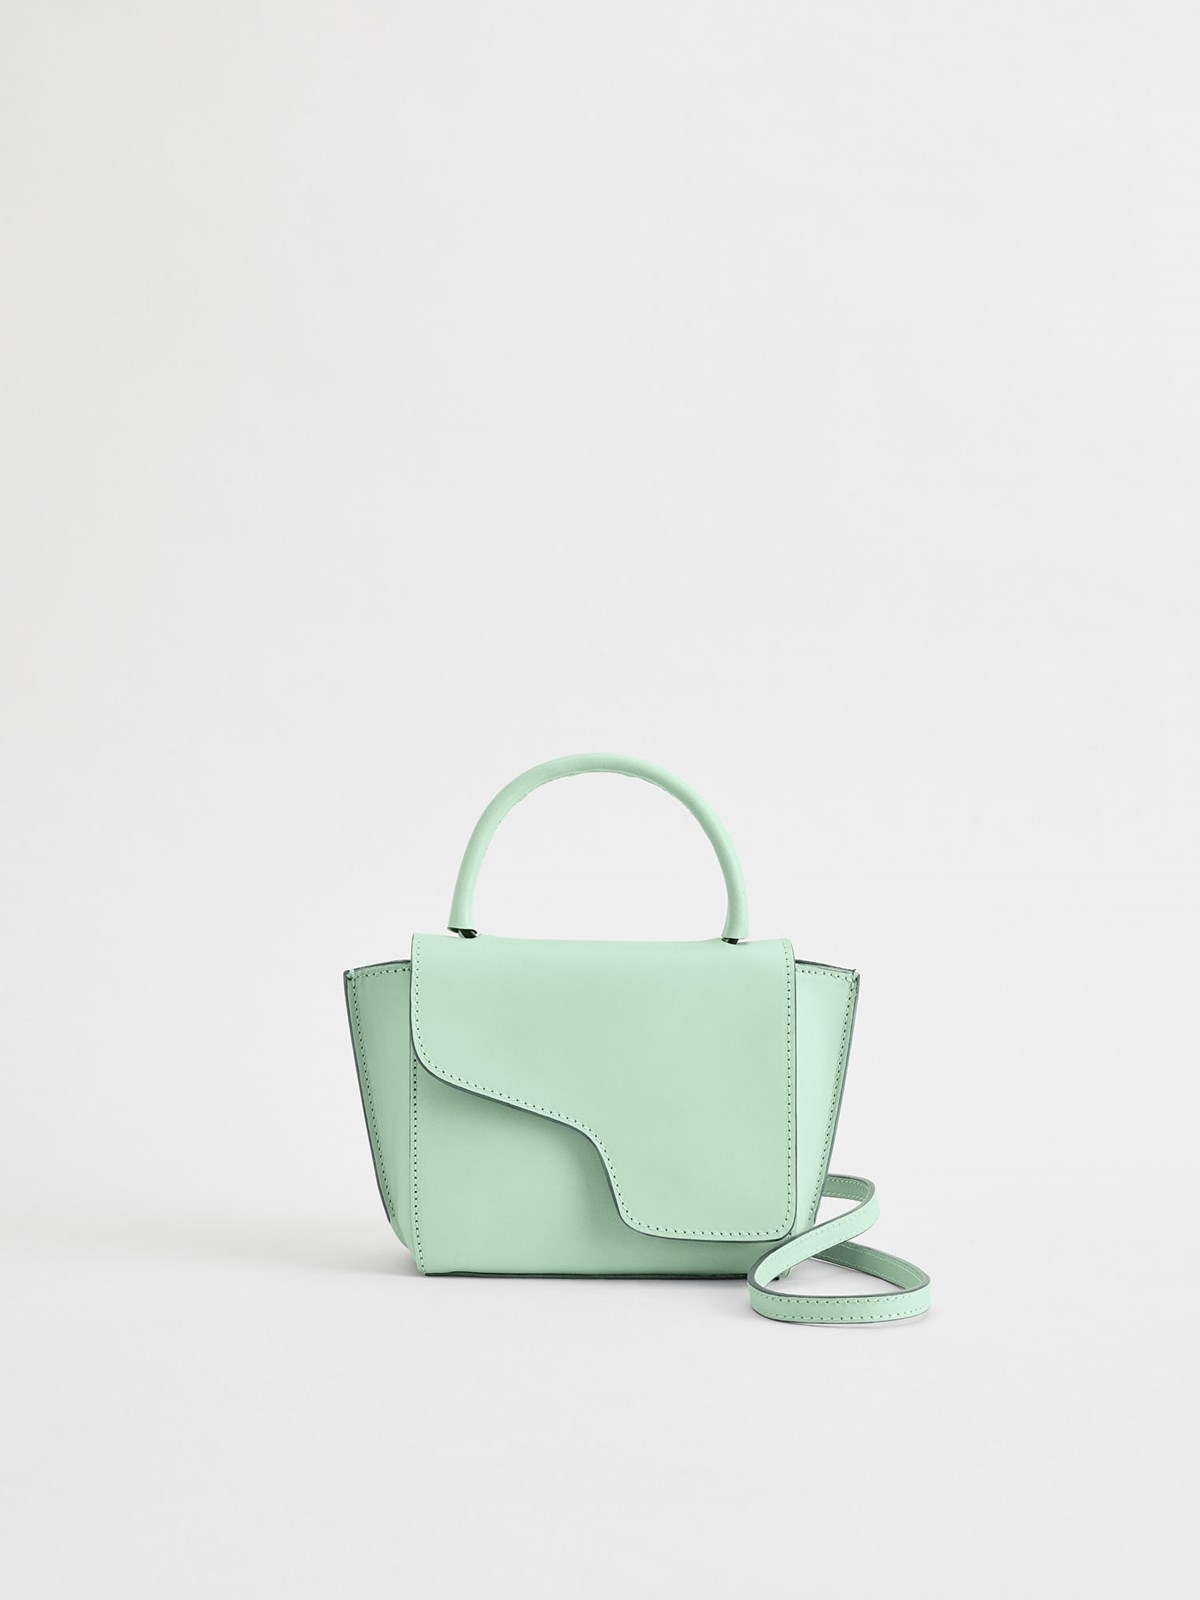 Montalcino Mint Mini handbag